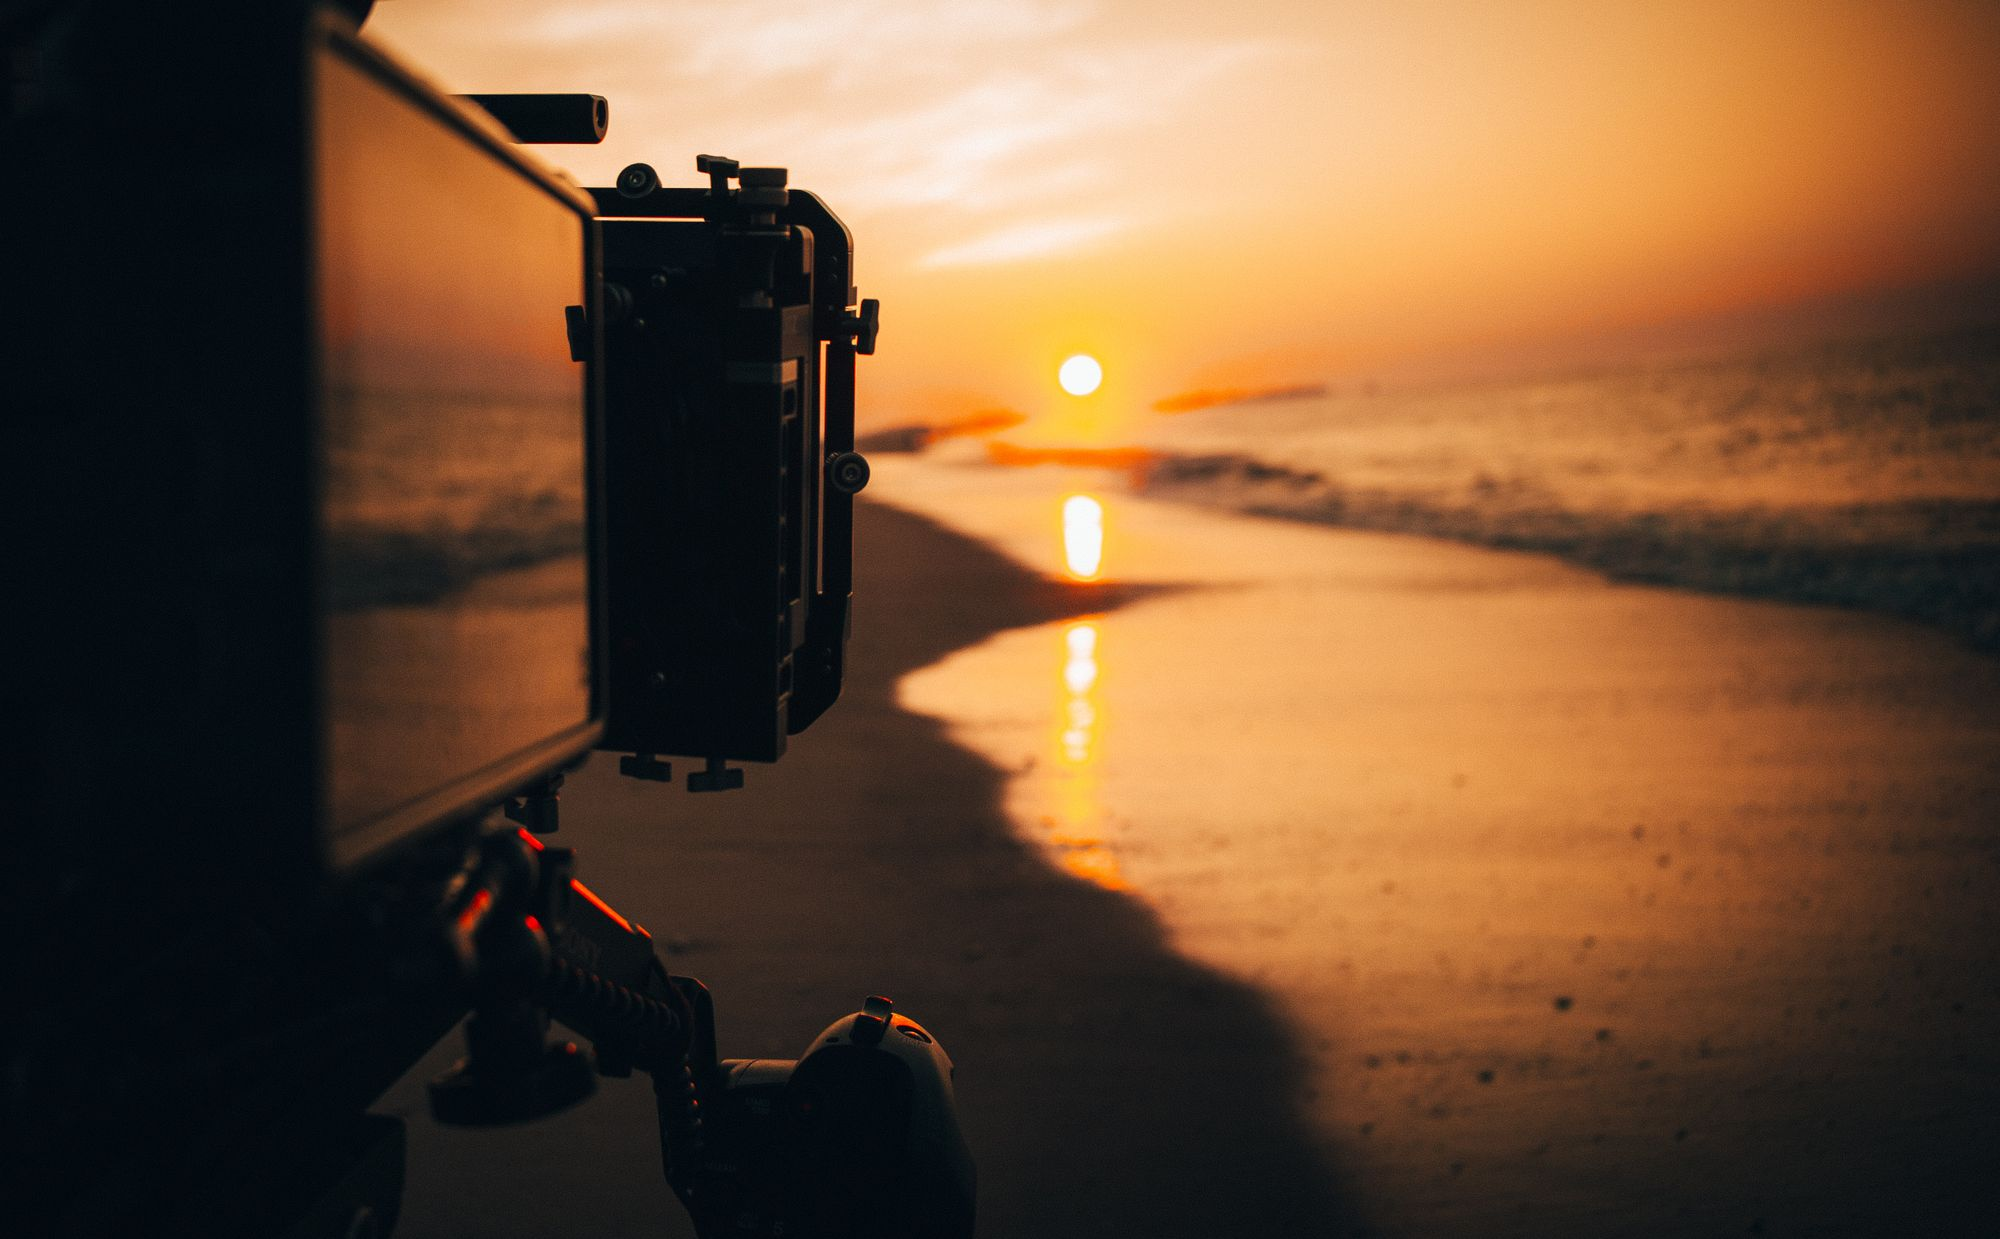 Find a suitable location for your brand video